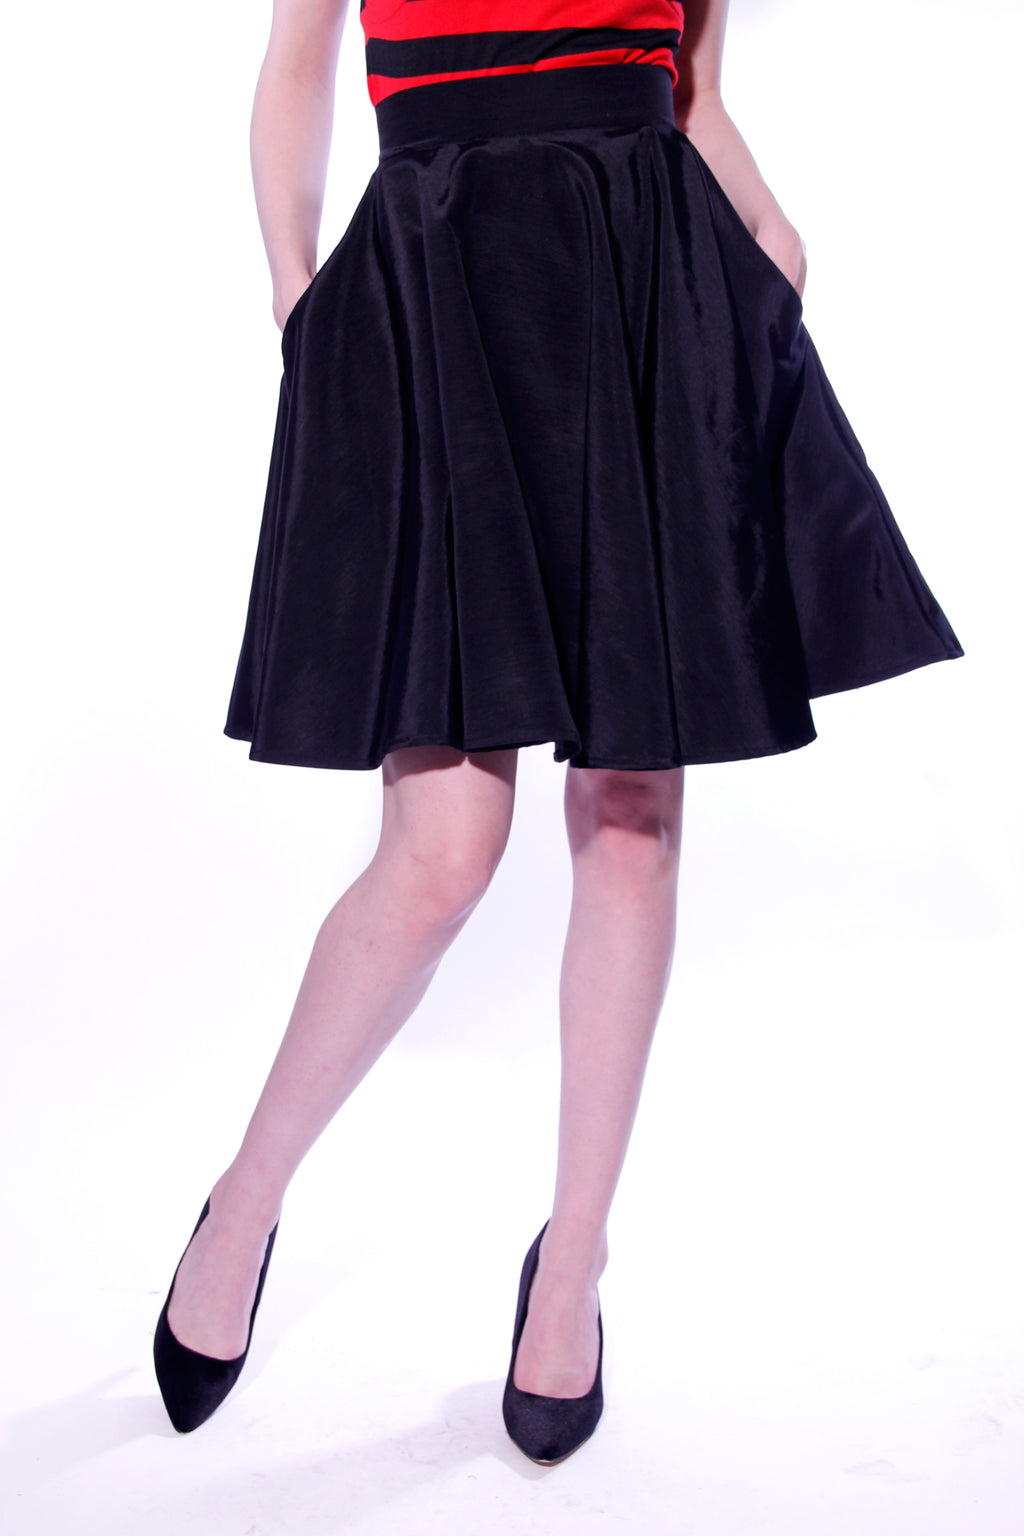 Lucille Above Knee Swing Skirt with Pockets - shopjessicalouise.com